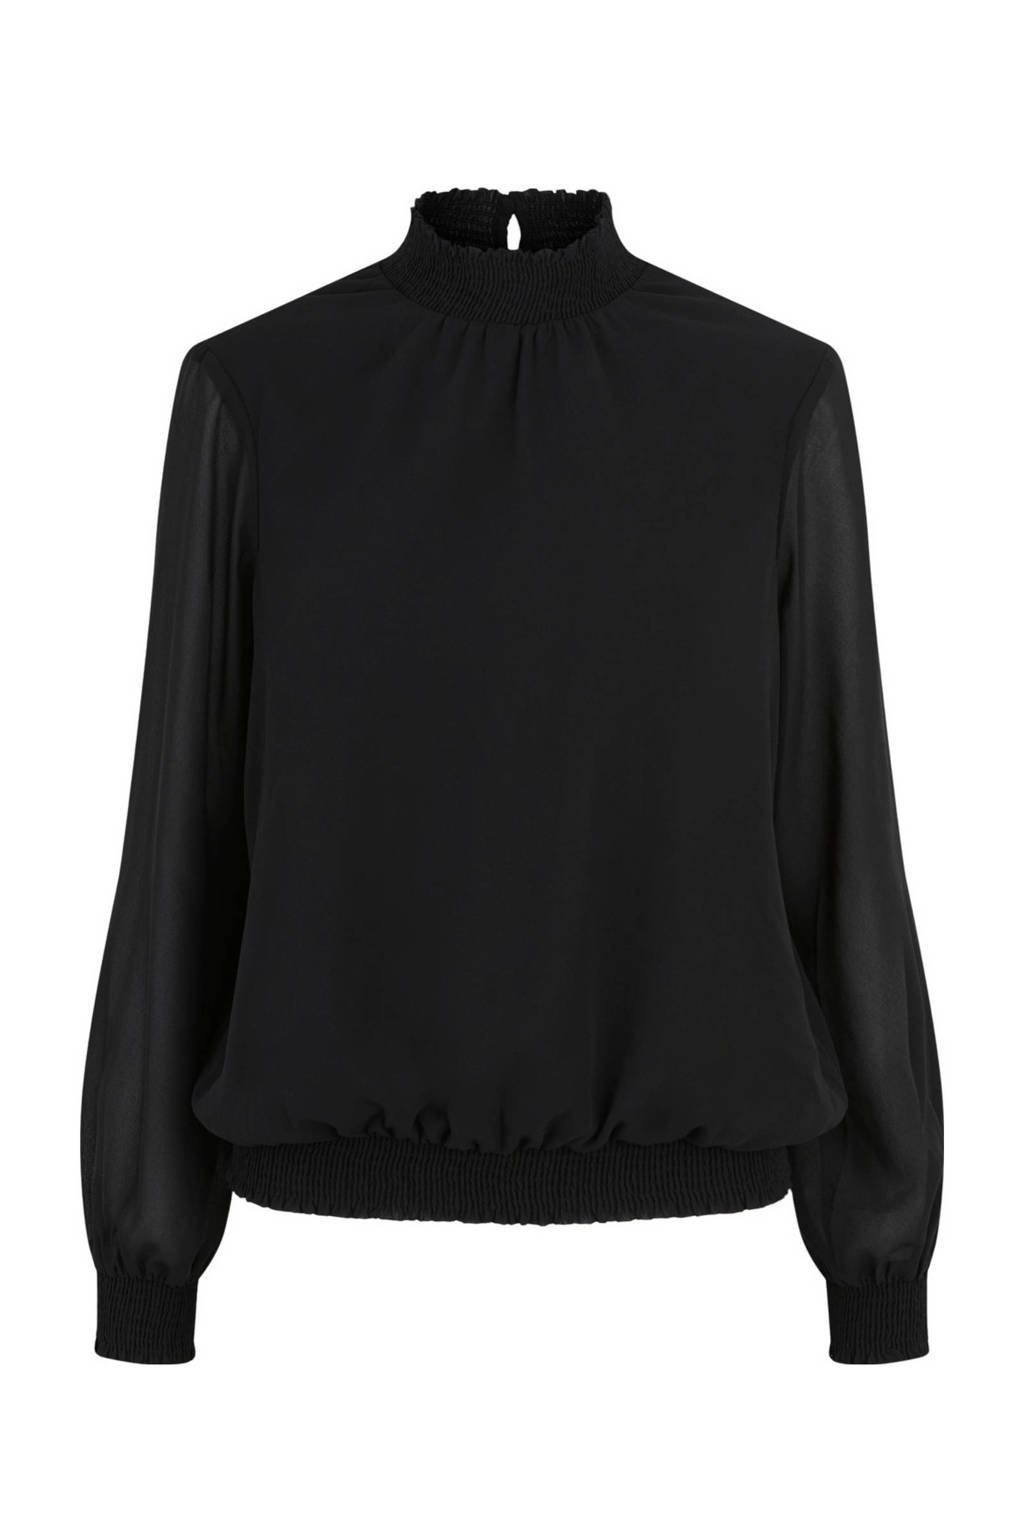 PIECES blouse zwart, Zwart